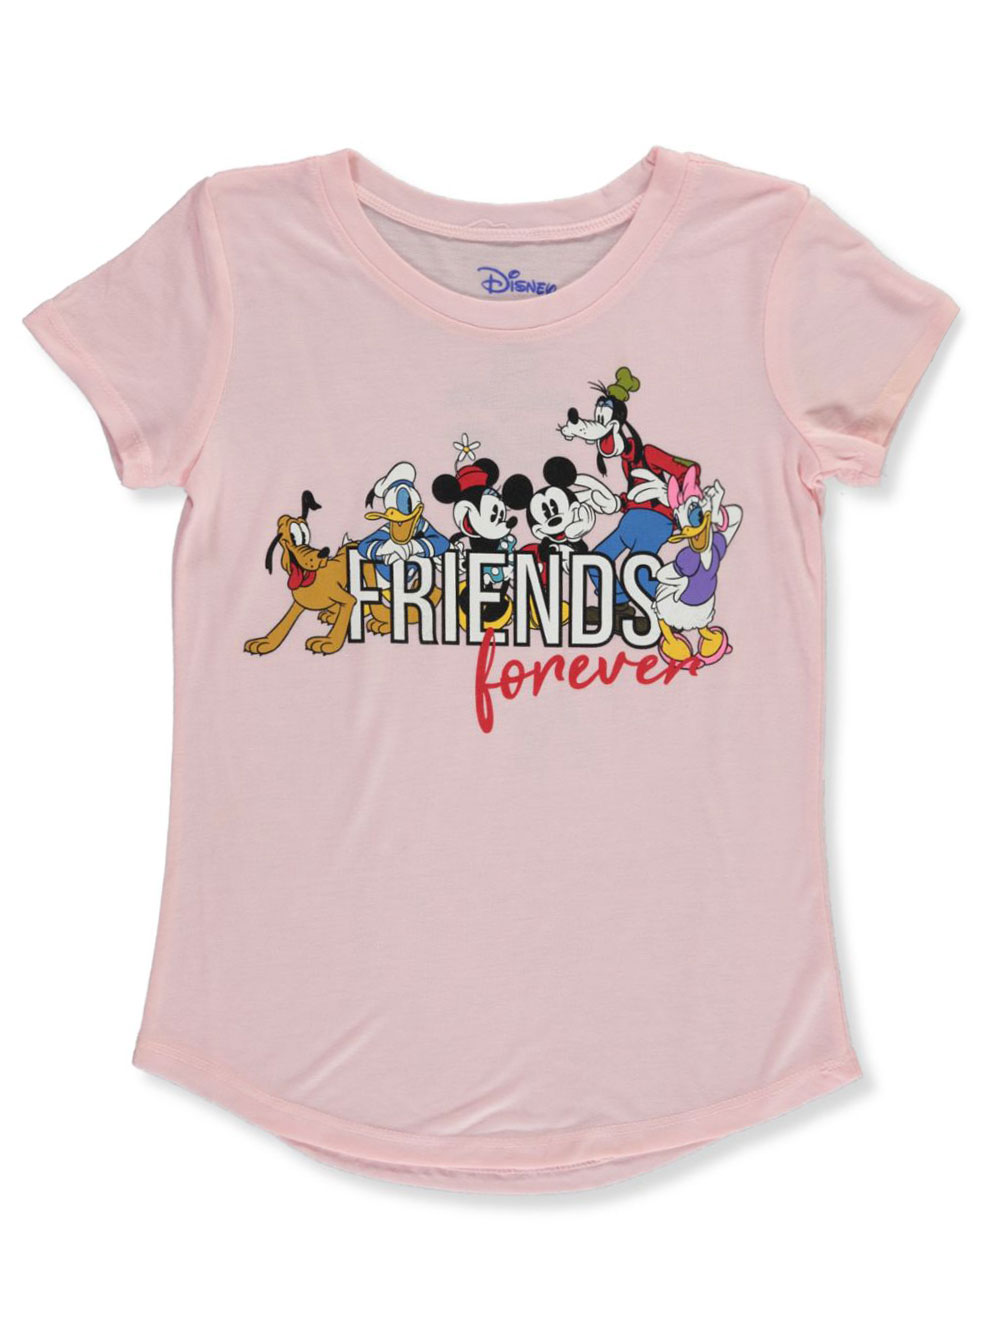 Girls' Friends Forever T-Shirt